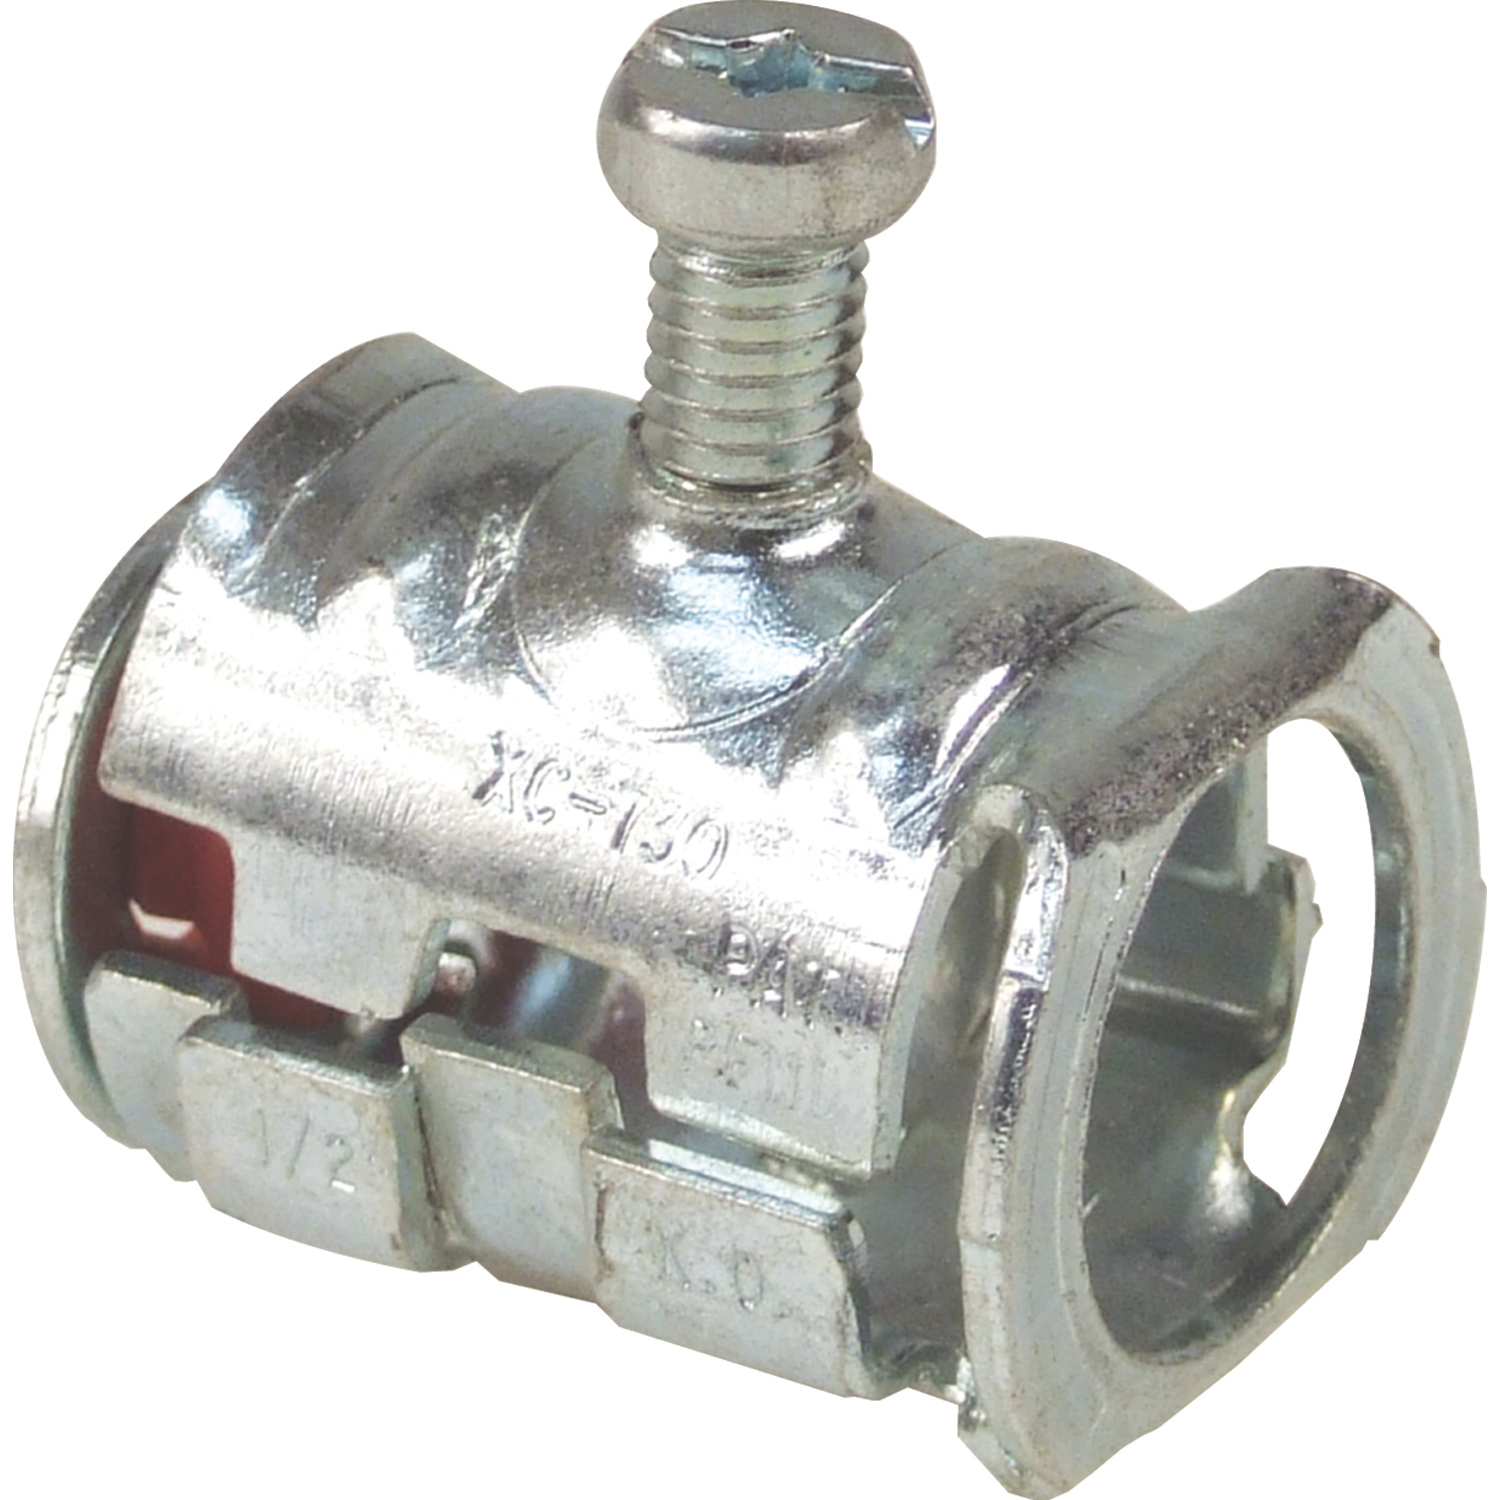 "STL-CTY XC731 CABLE LOK SET SCREWCONNECTOR WITH 1/2"" KNOCKOUT, INSUL"